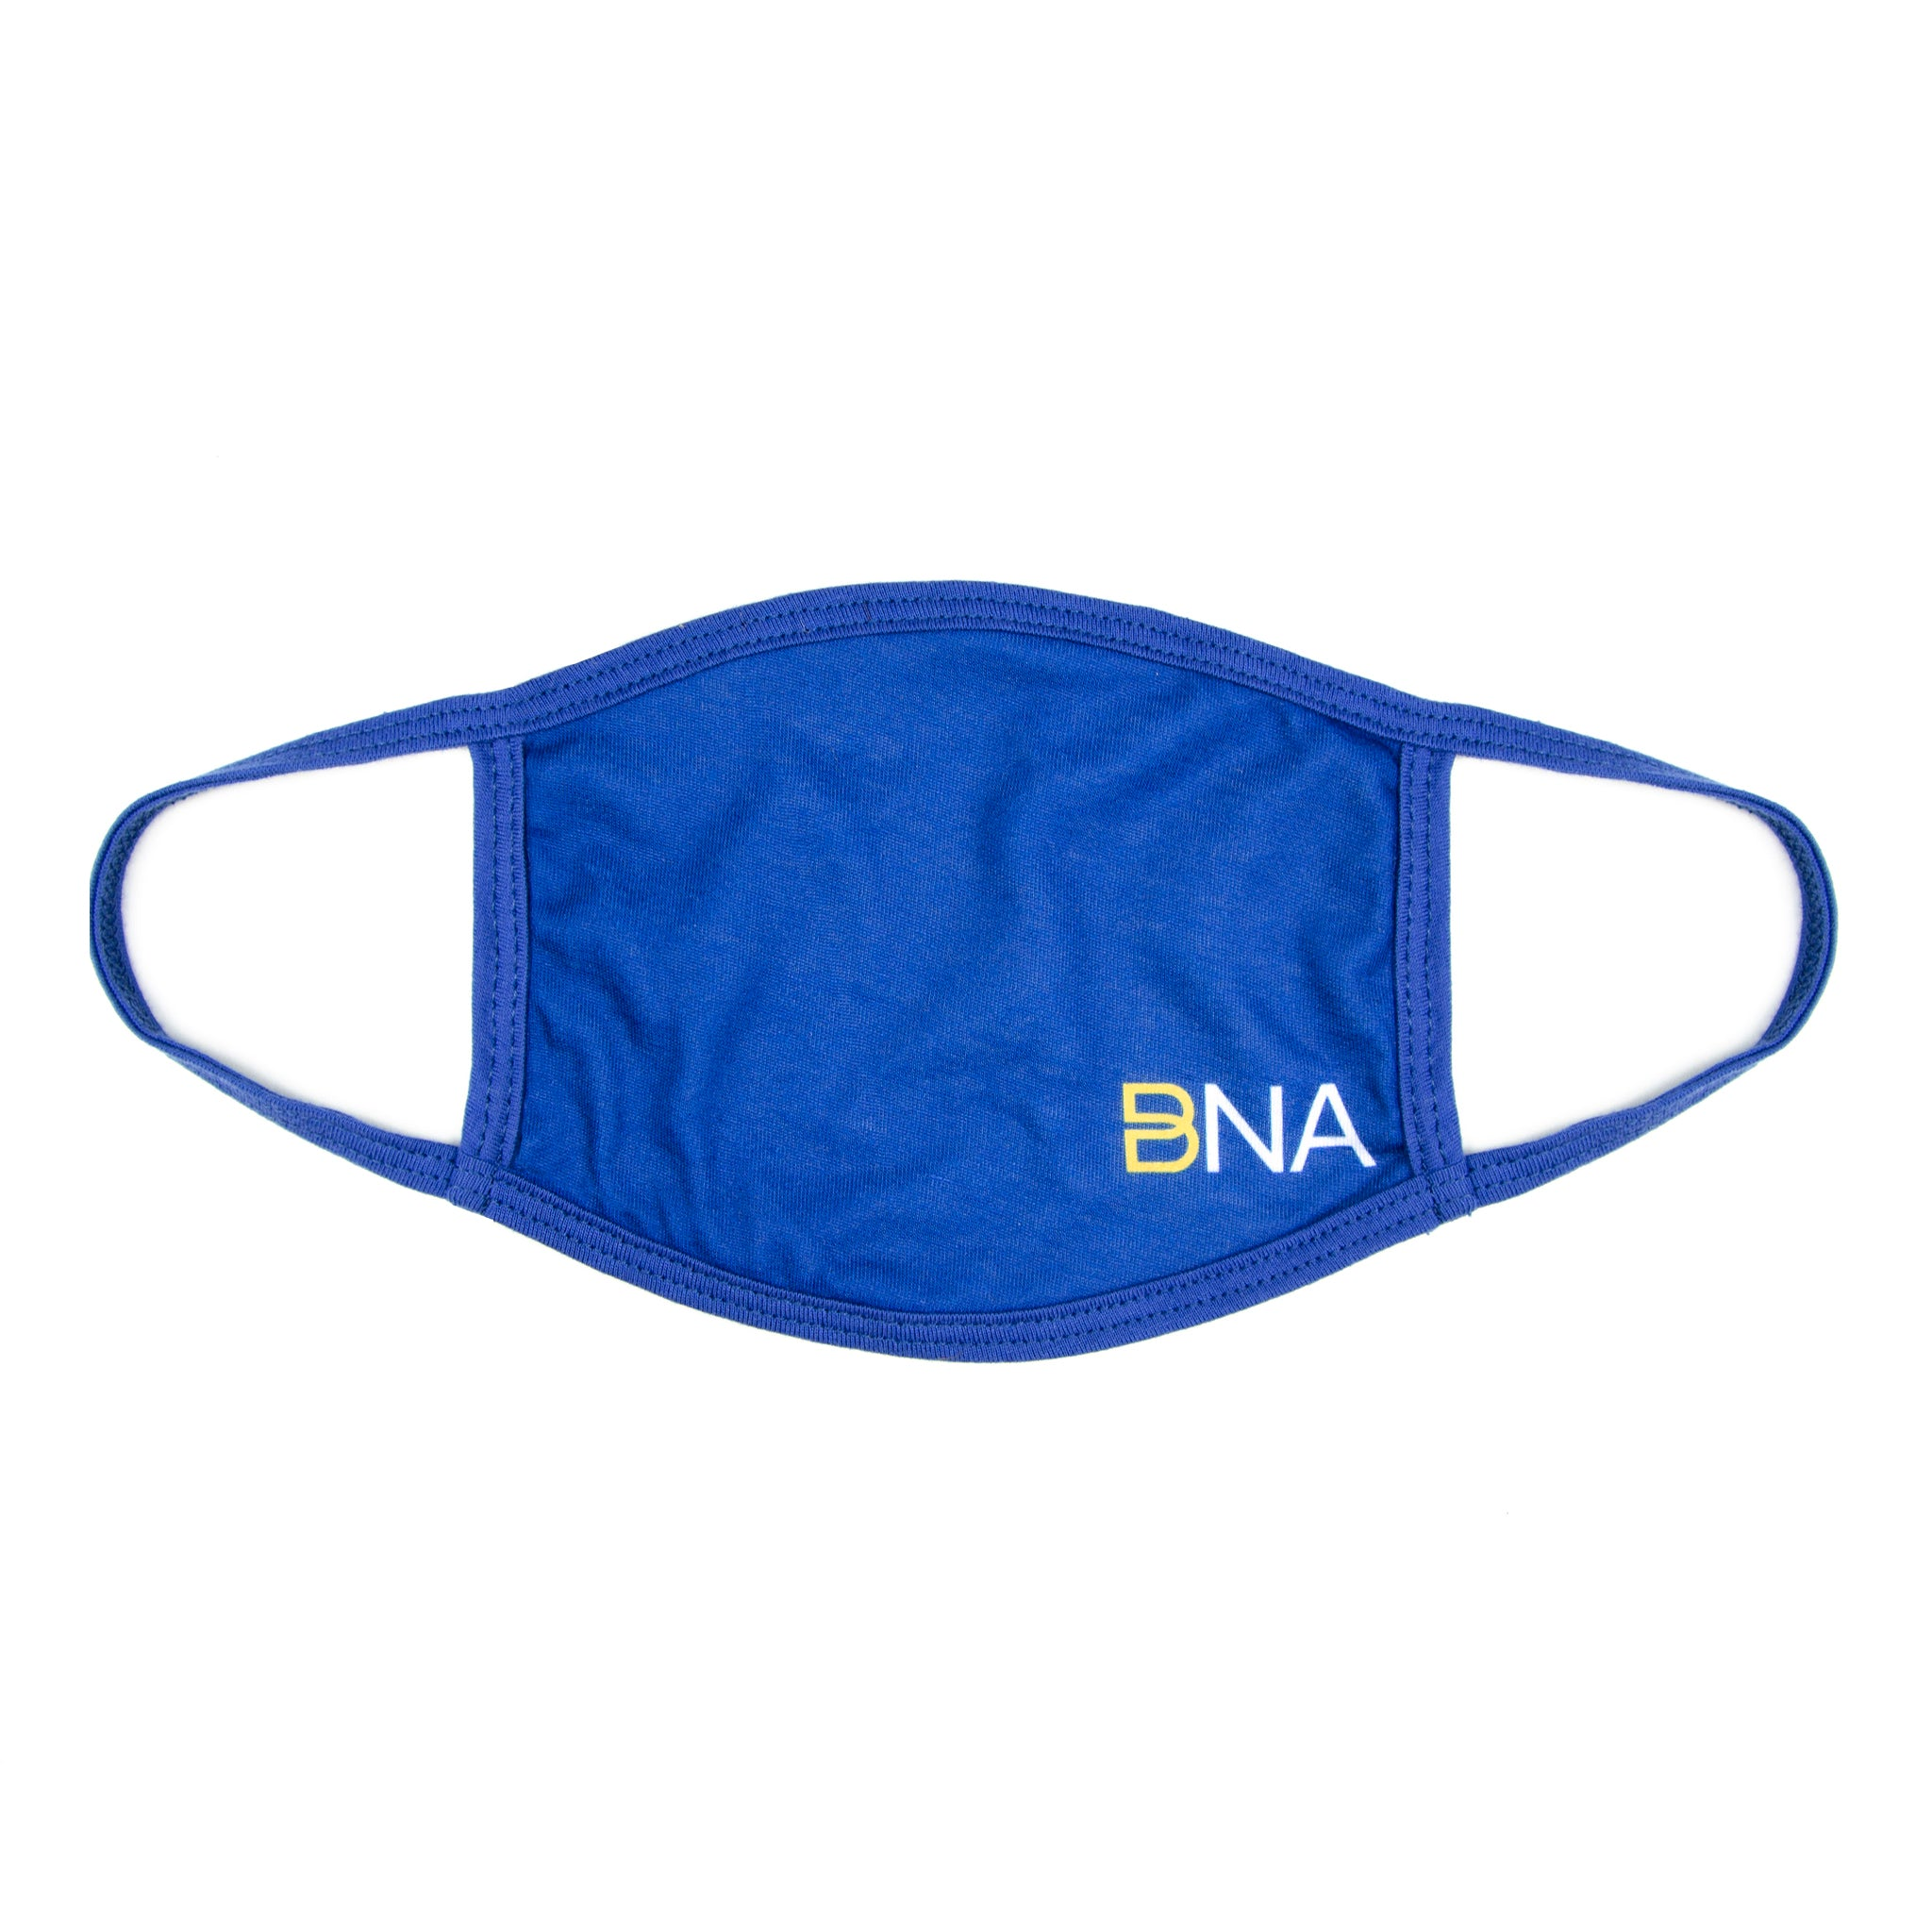 BNA Face Mask